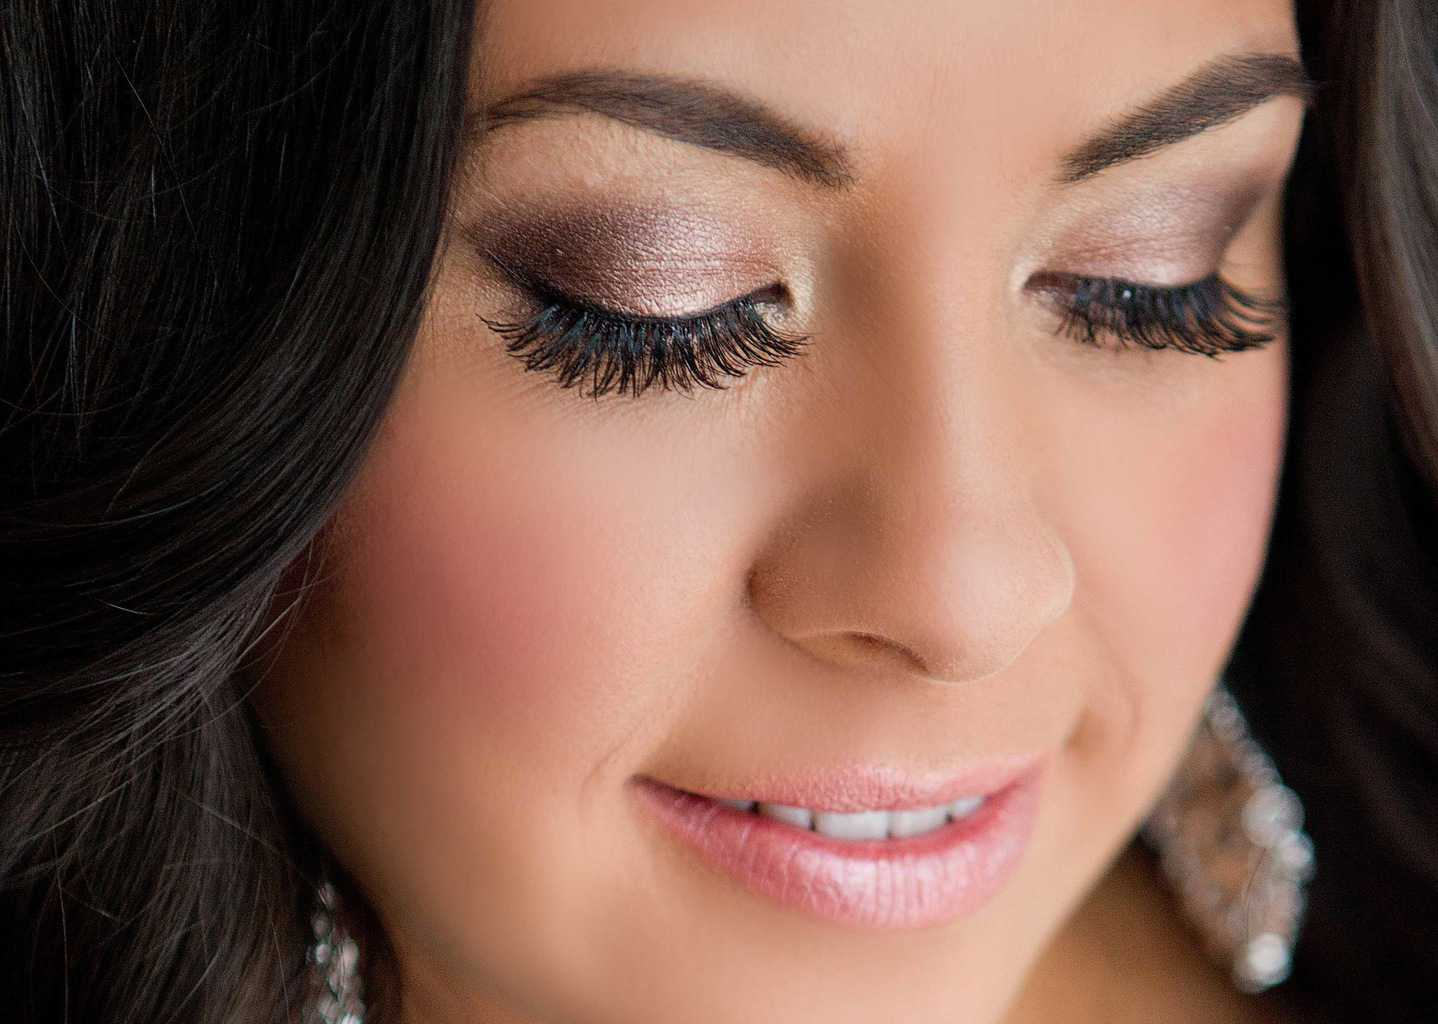 Summer Wedding Makeup Looks : 10 Beauty Tips for Her on the Big Day - TwoFoot Creative